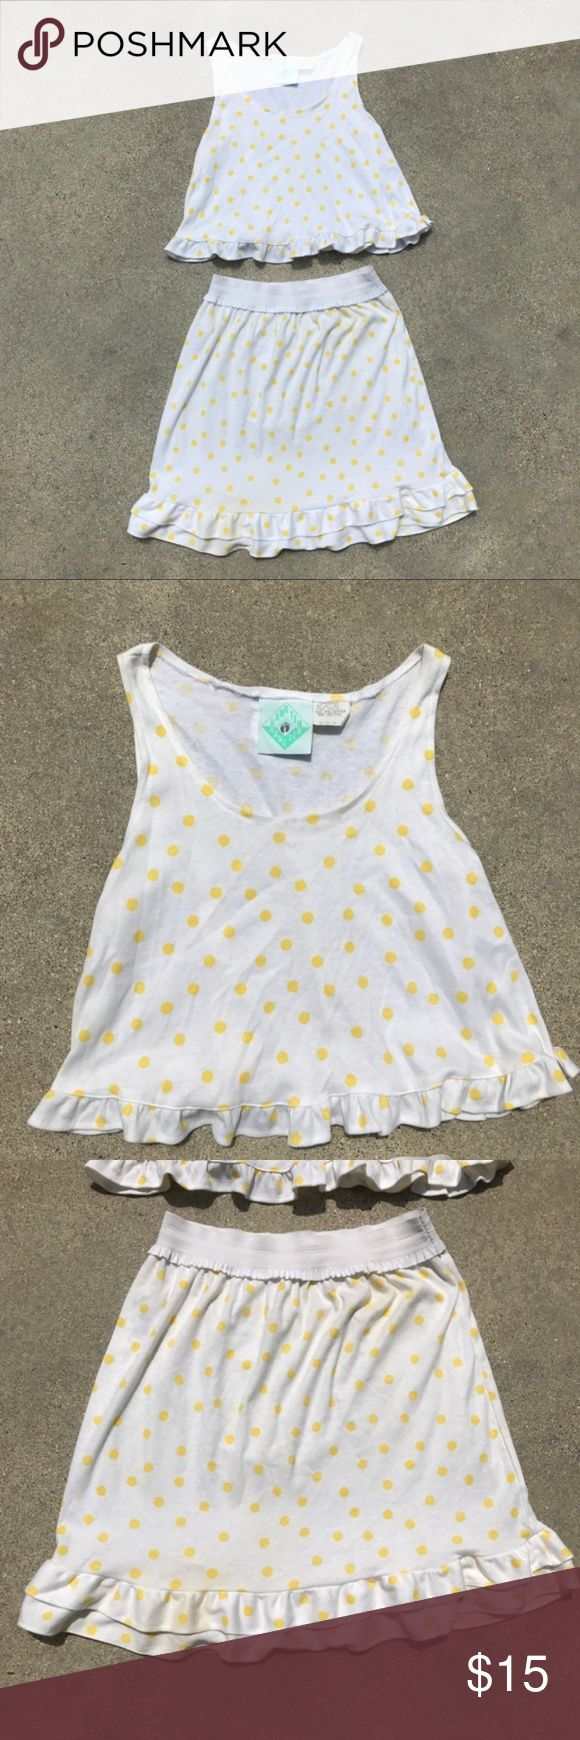 Vintage Hang Ten Polka Dot Top/Skirt Set Adorable yellow polka dot vintage Hang Ten tank top/skirt set. Top is size medium, skirt is size large. The skirt has an elastic waistband, allowing for a lot of give. Good vintage condition with only flaws being a light stain on the skirt as pictured in the last image which is not noticeable when worn and a few places with loose stitching. Measurements are as follows: Top:  Pit to pit: 18 inches Shoulder to hem: 18 inches  Skirt: Waist: 25 inches…